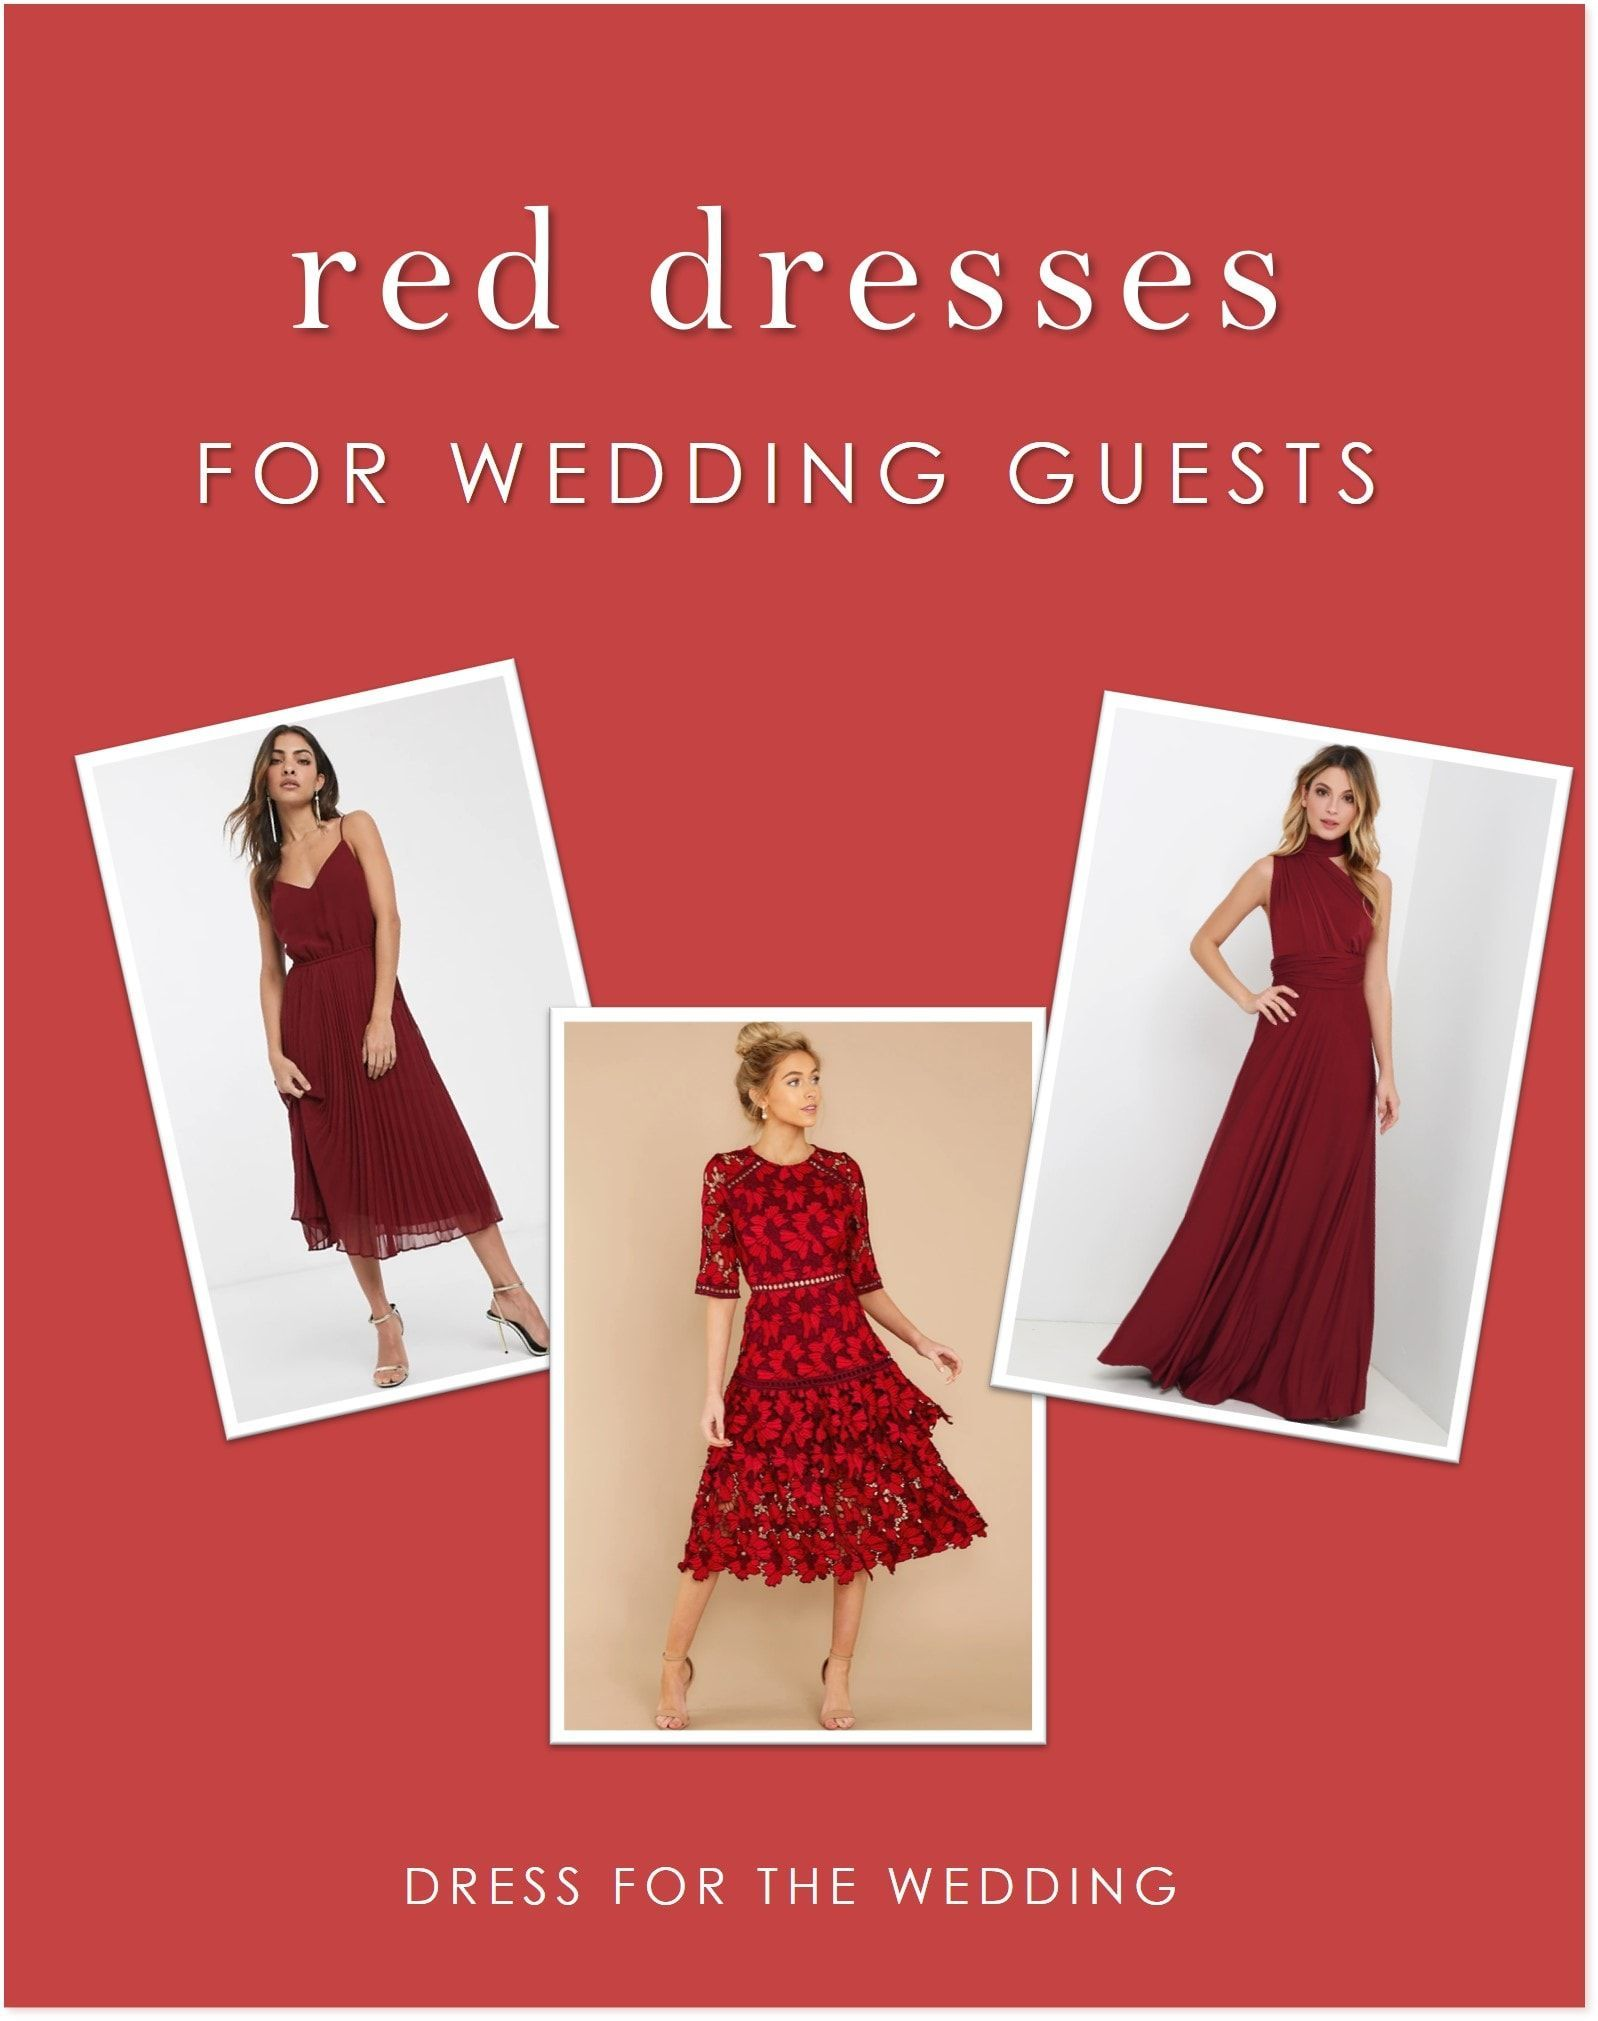 Red Dresses For Weddings Dress For The Wedding In 2021 Red Wedding Dresses Wedding Guest Dress Wedding Dresses [ 2021 x 1598 Pixel ]